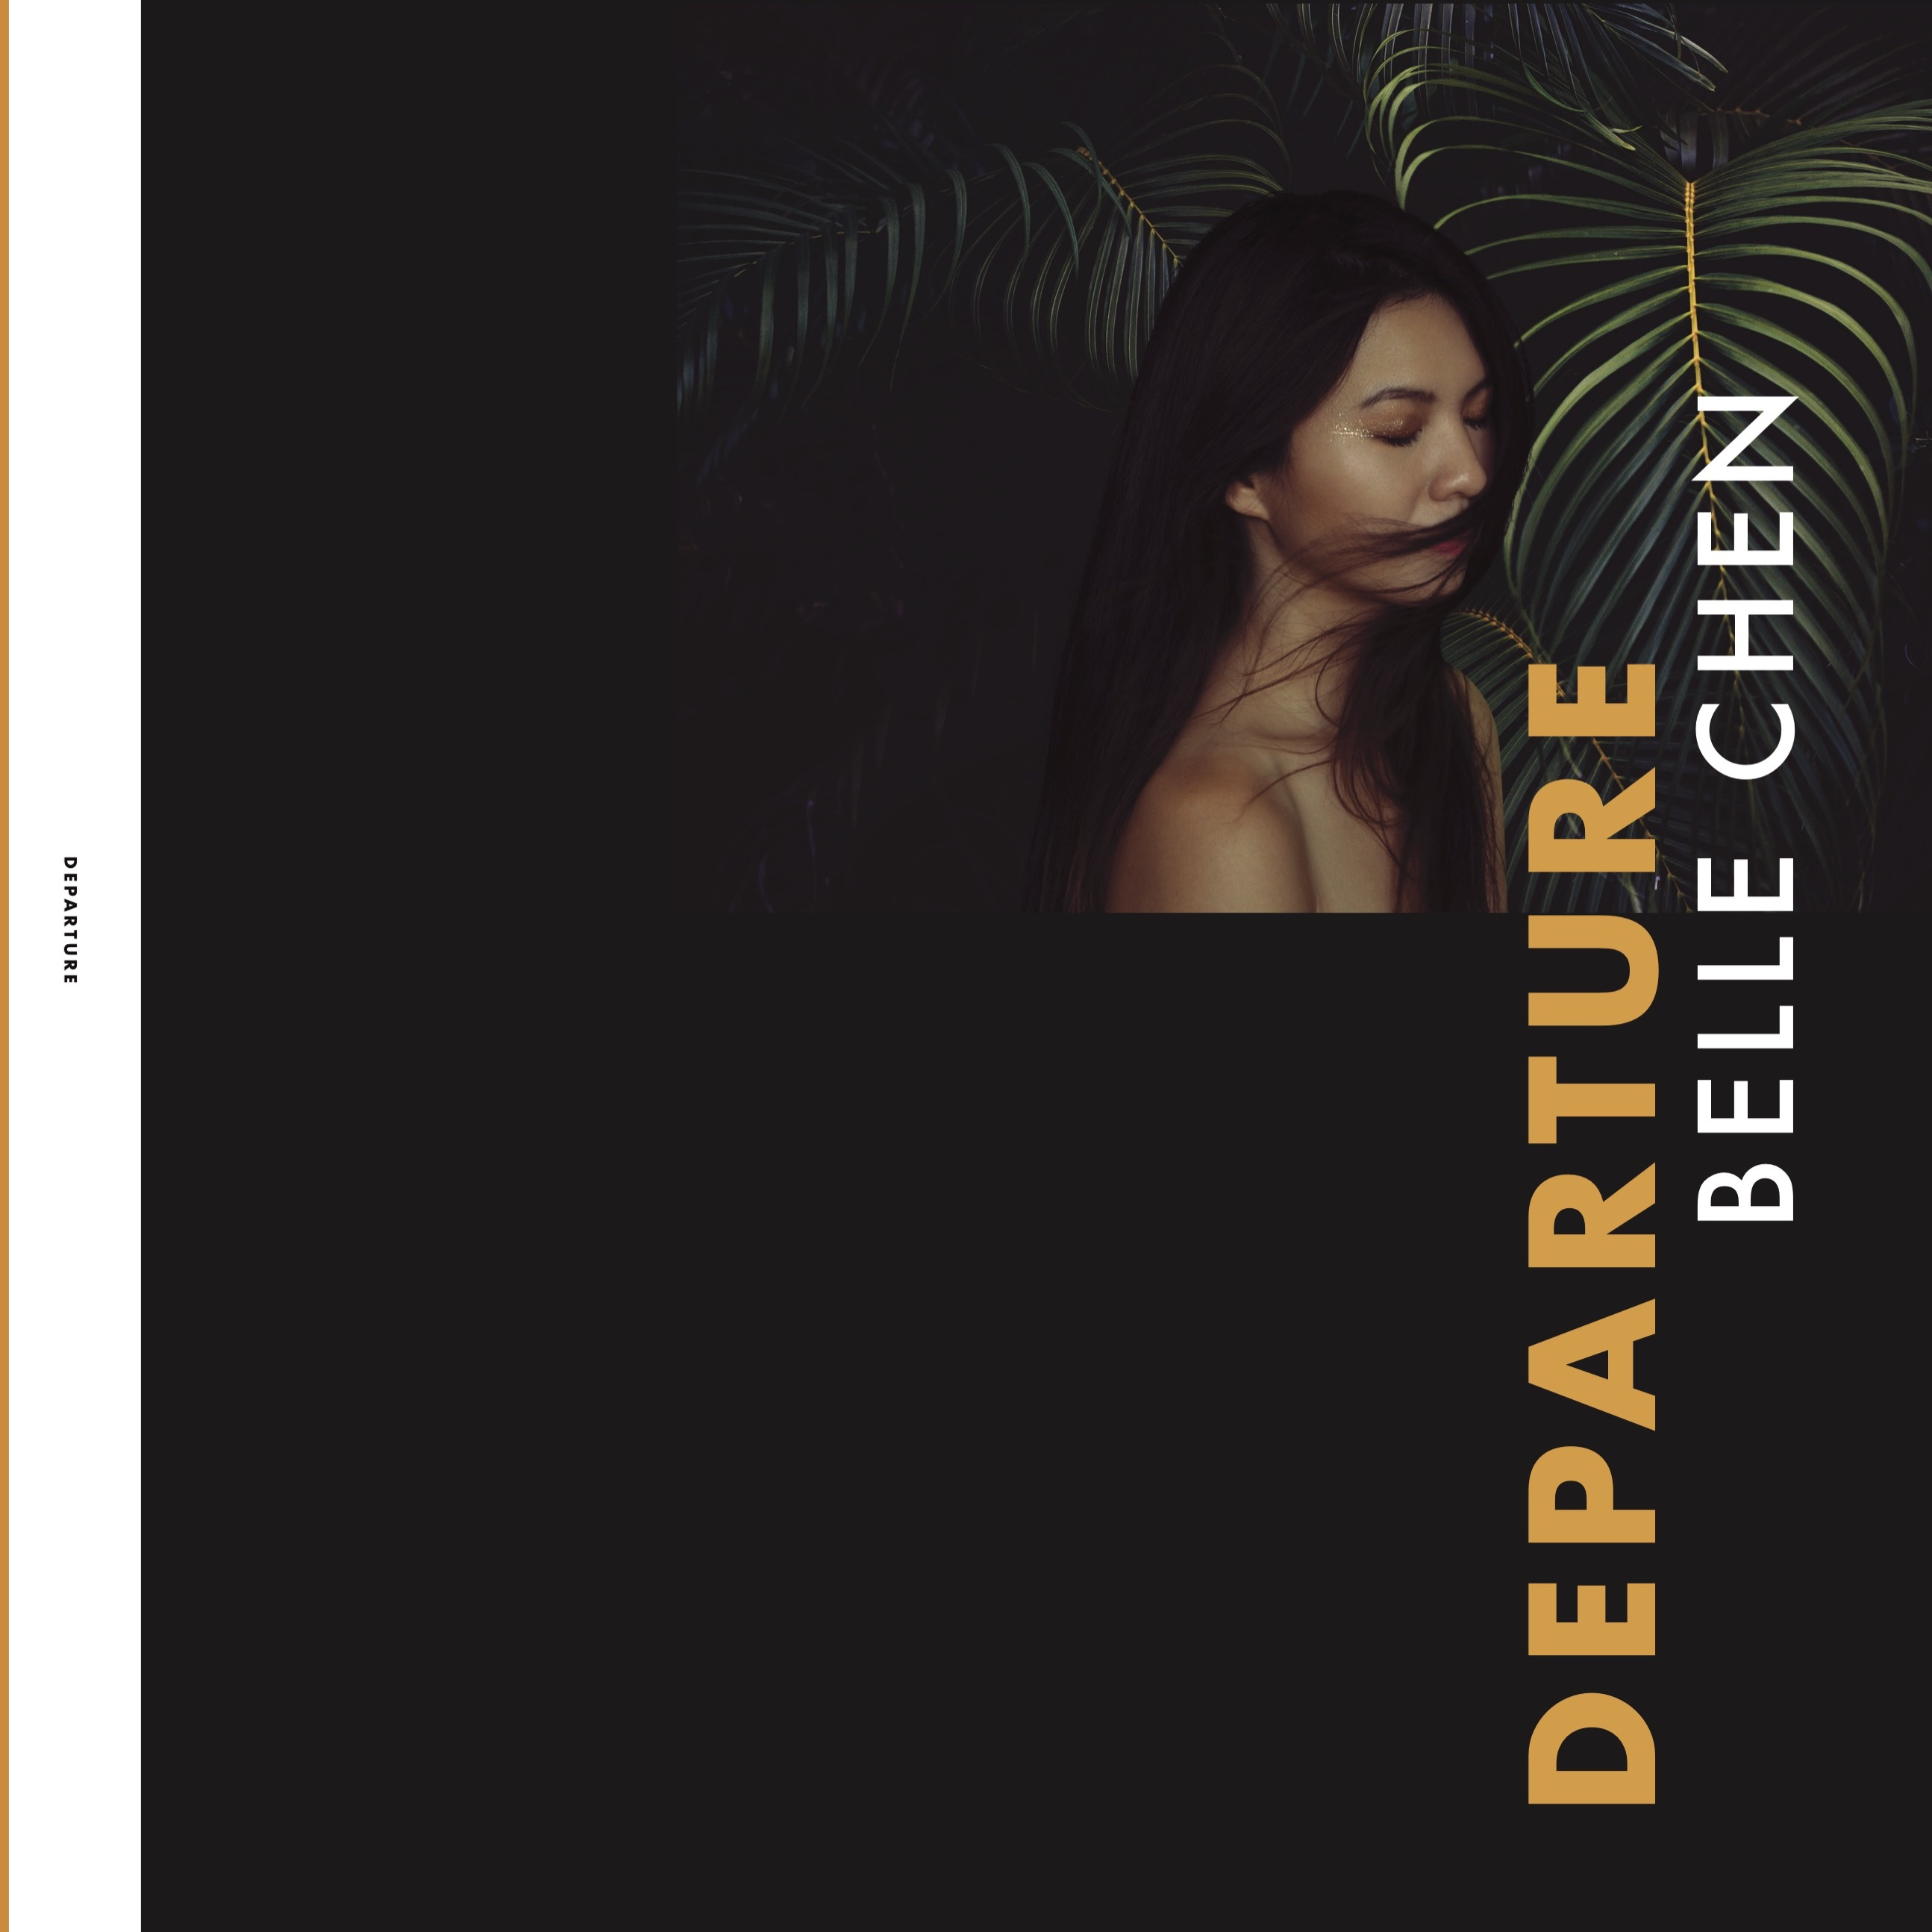 Departure (Piano Score Book)